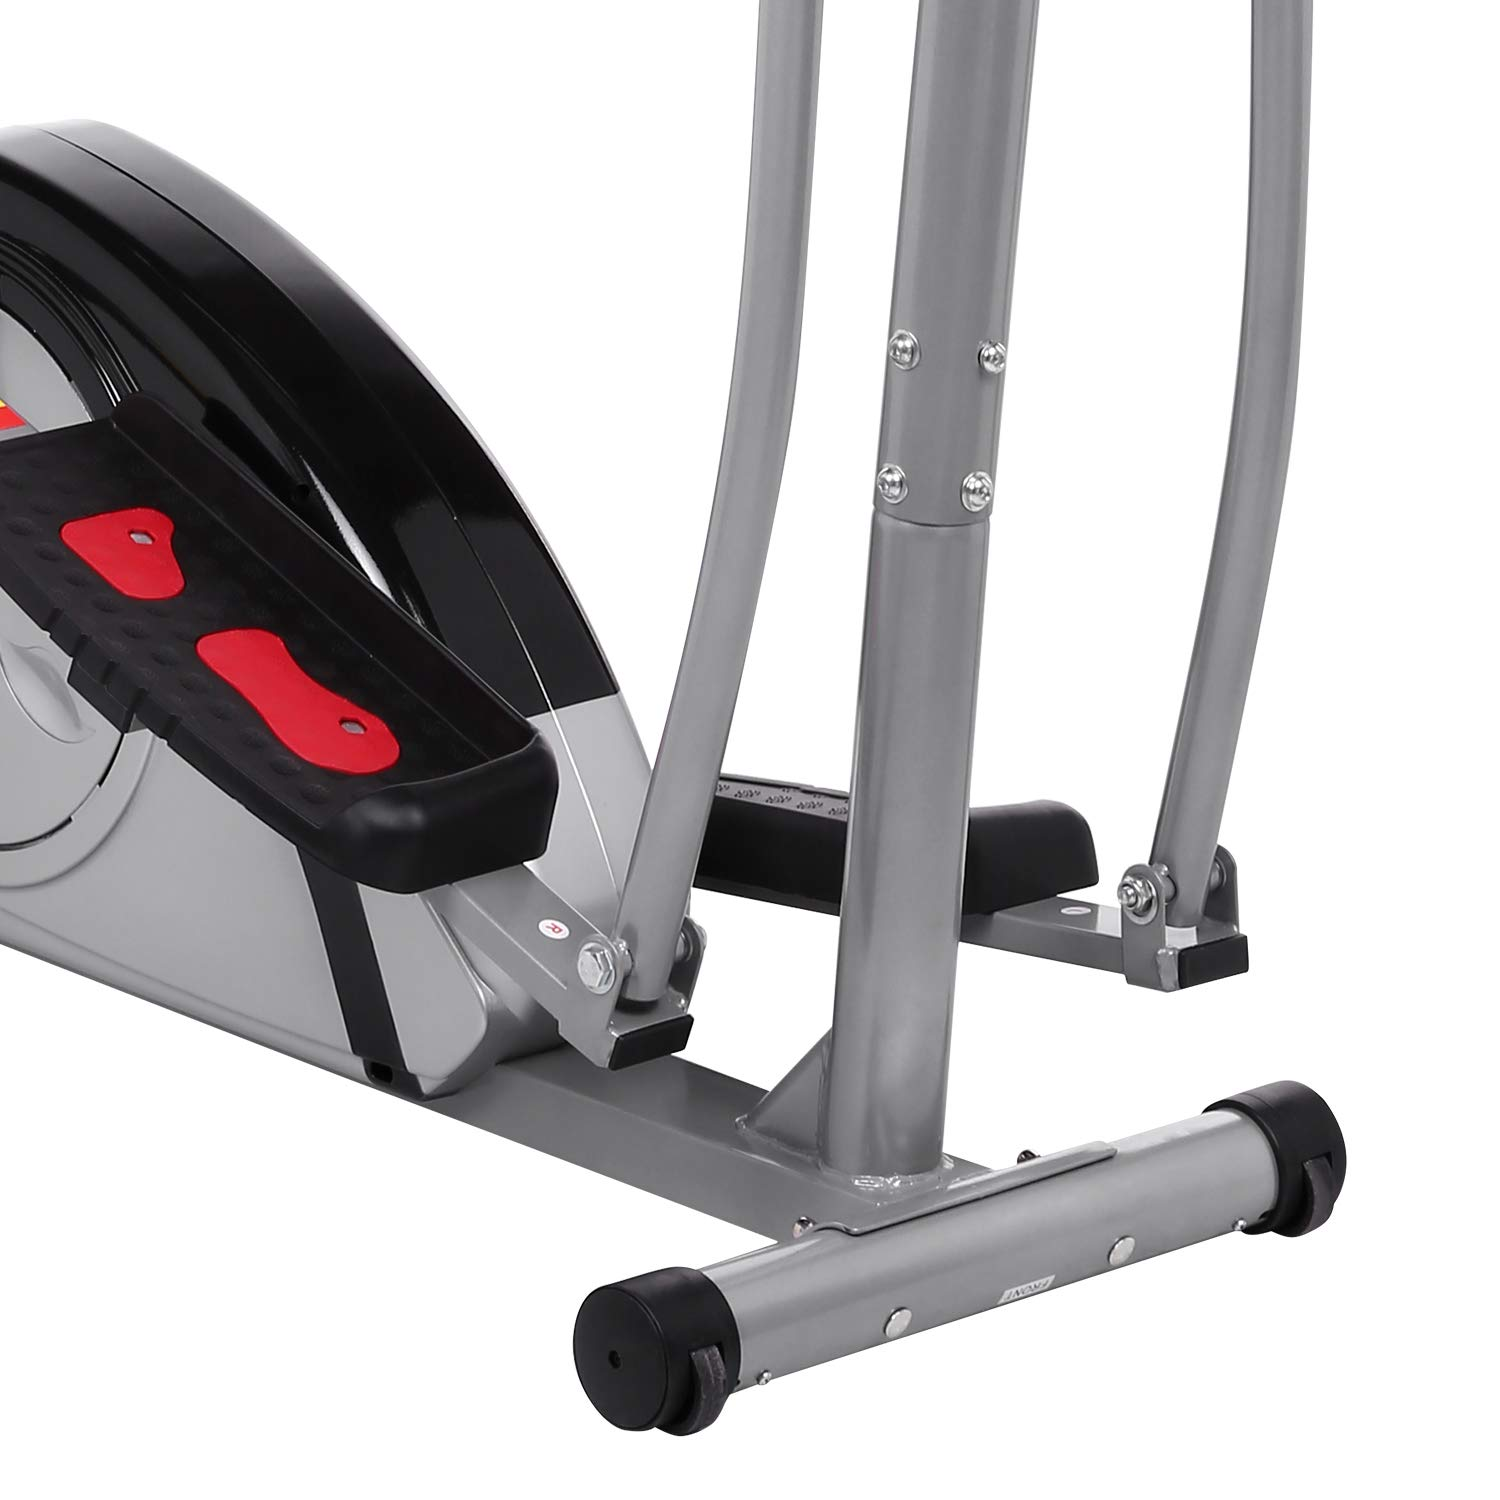 Bestlucky Elliptical Machine Elliptical Training Machines Magnetic Smooth Quiet Driven Elliptical Exercise Machine for Home Use